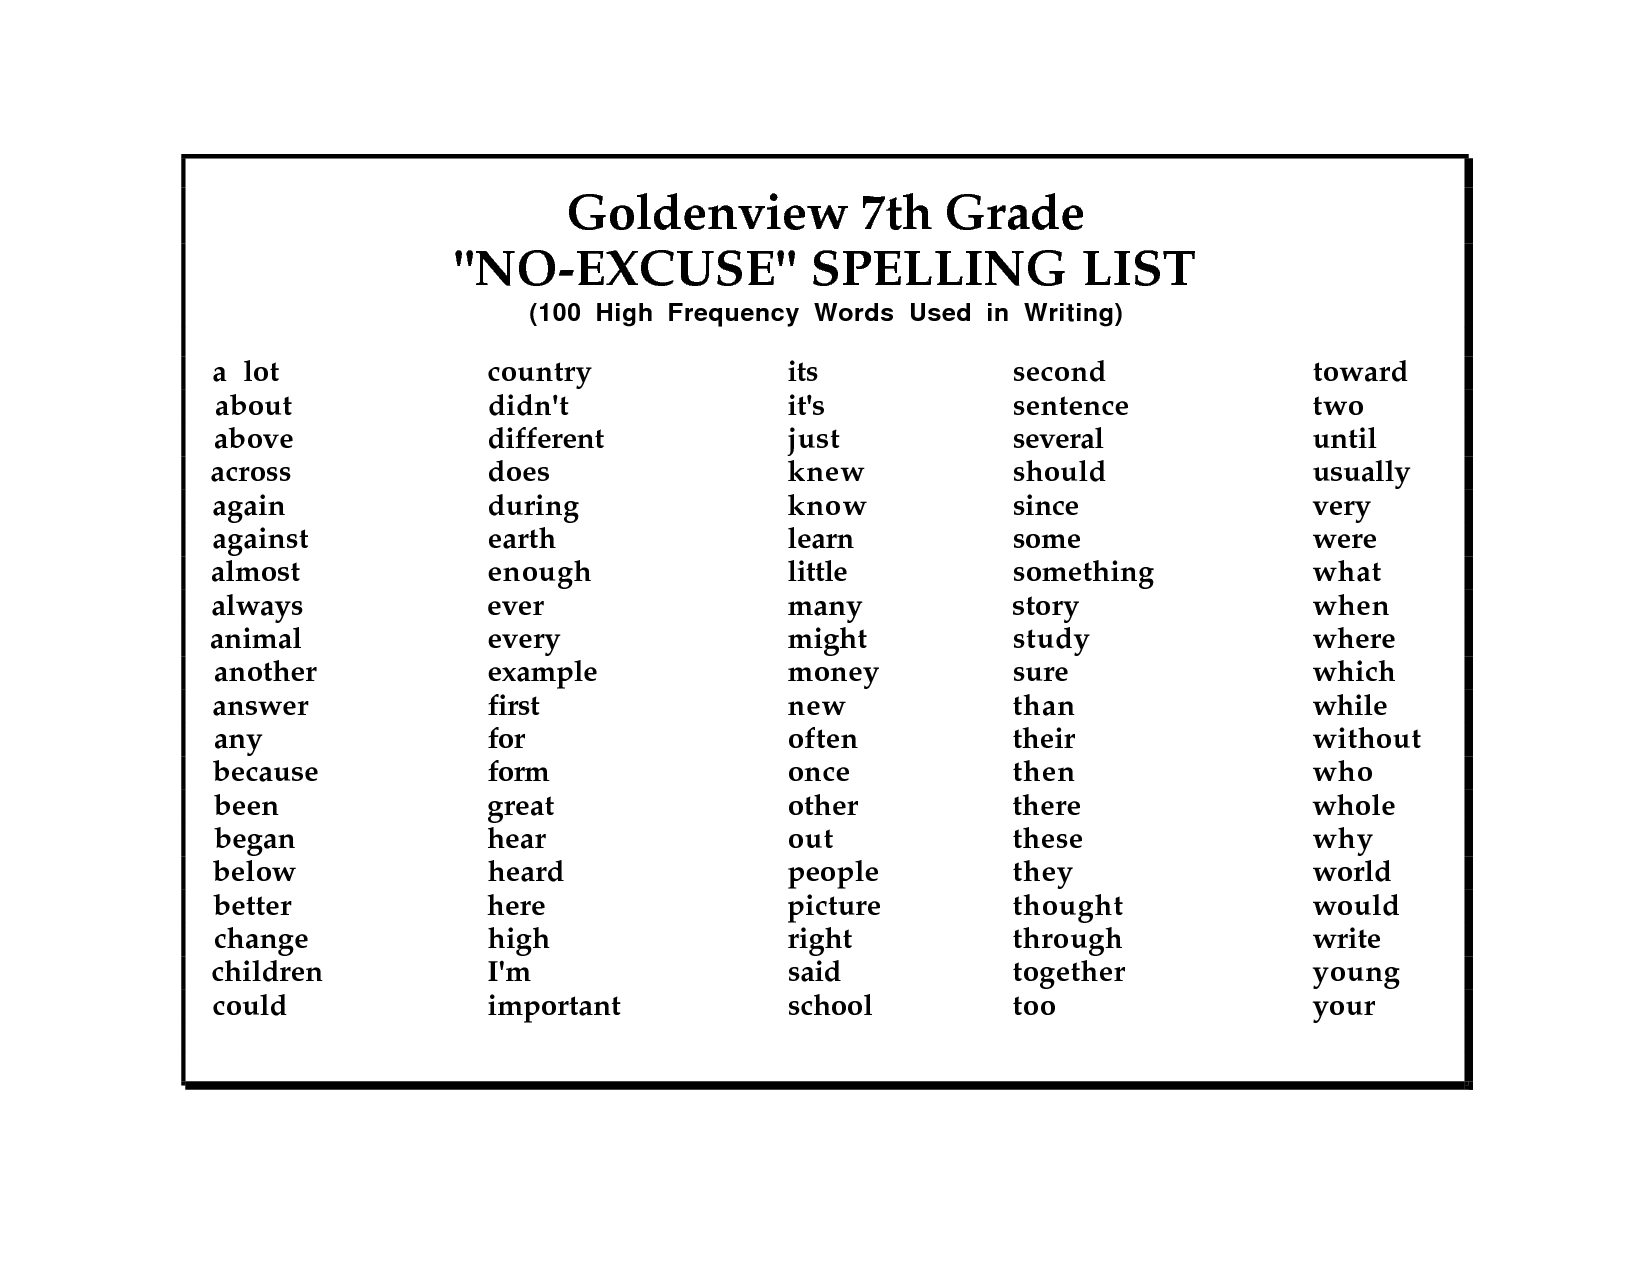 hight resolution of 8th Grade Sight Words List   13 Best Images of Vocabulary Worksheets For  3rd Grade - 3rd Grade Language Arts…   Spelling words list